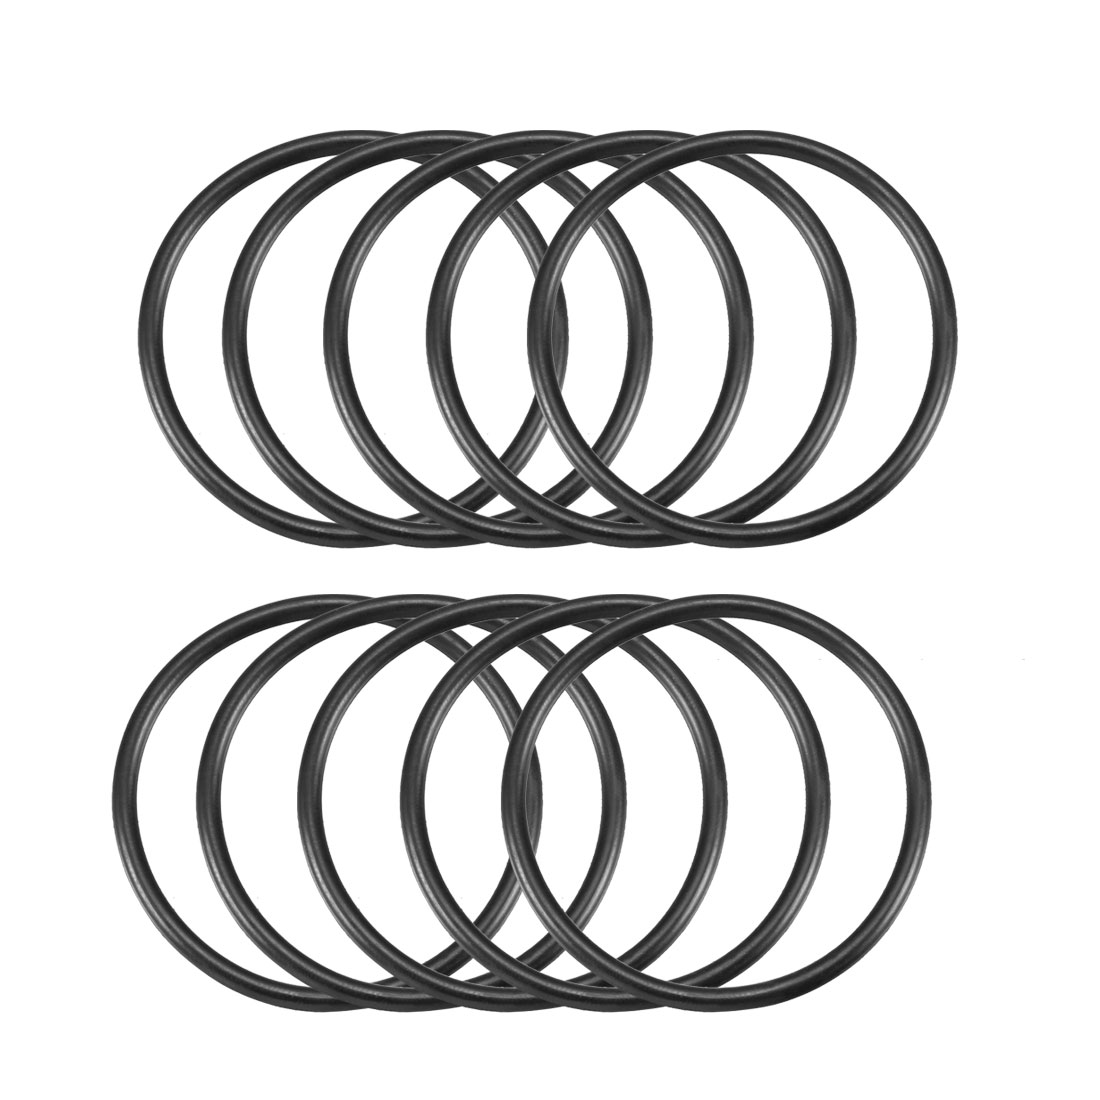 10 Pcs 40mm x 2.65mm Black Silicone O Rings Oil Seals Gaskets